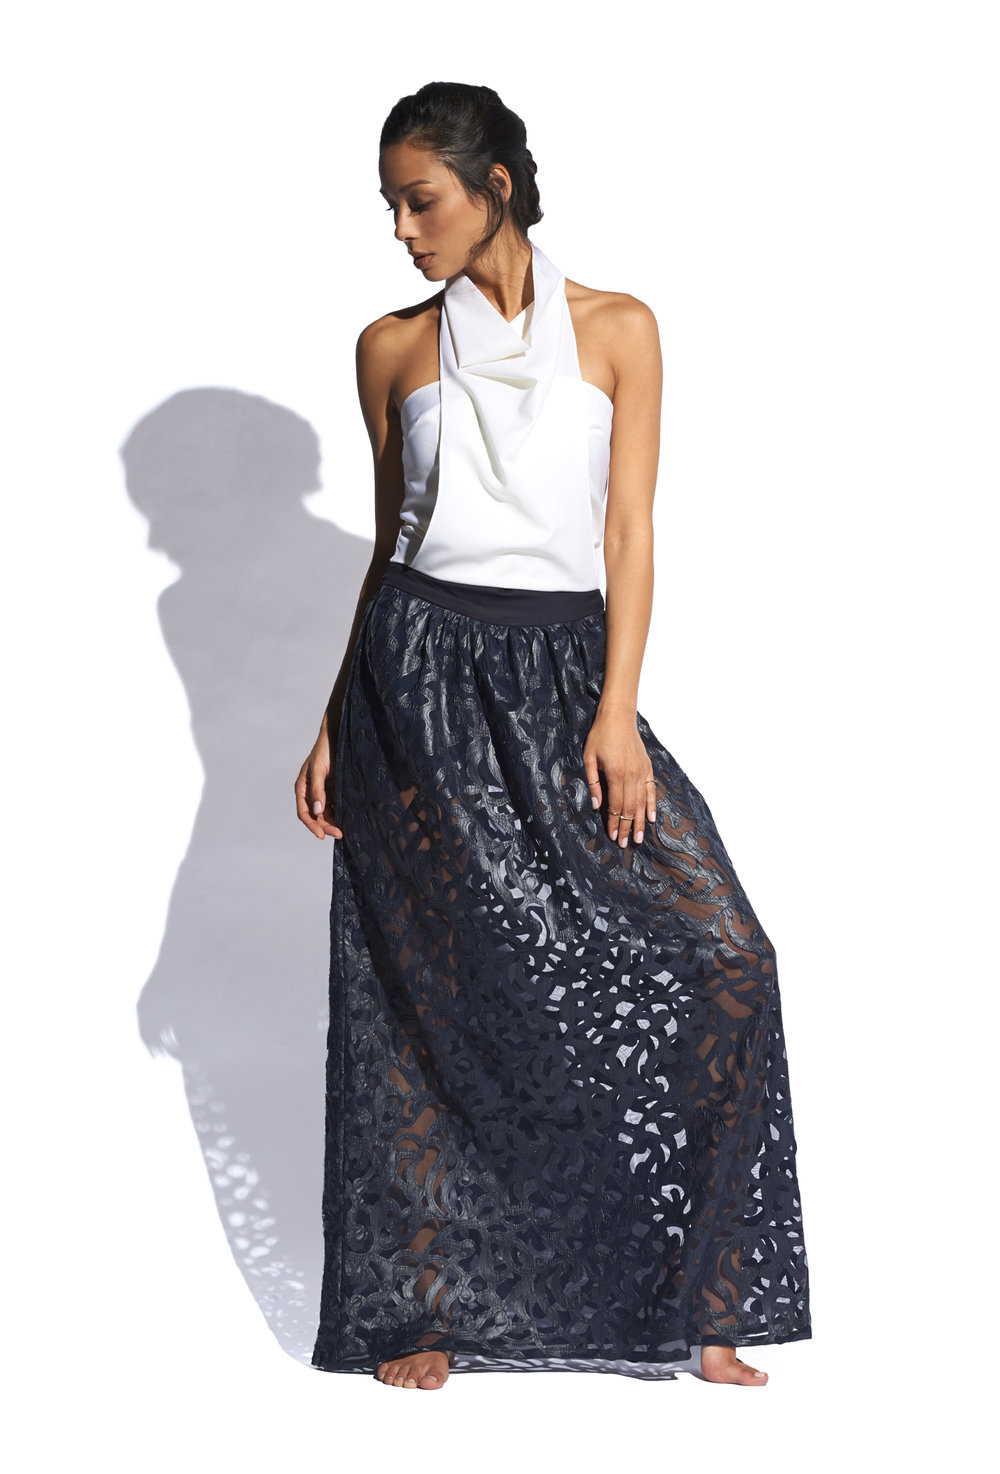 Copy of Bib Top w/ Sycamore Maxi Skirt